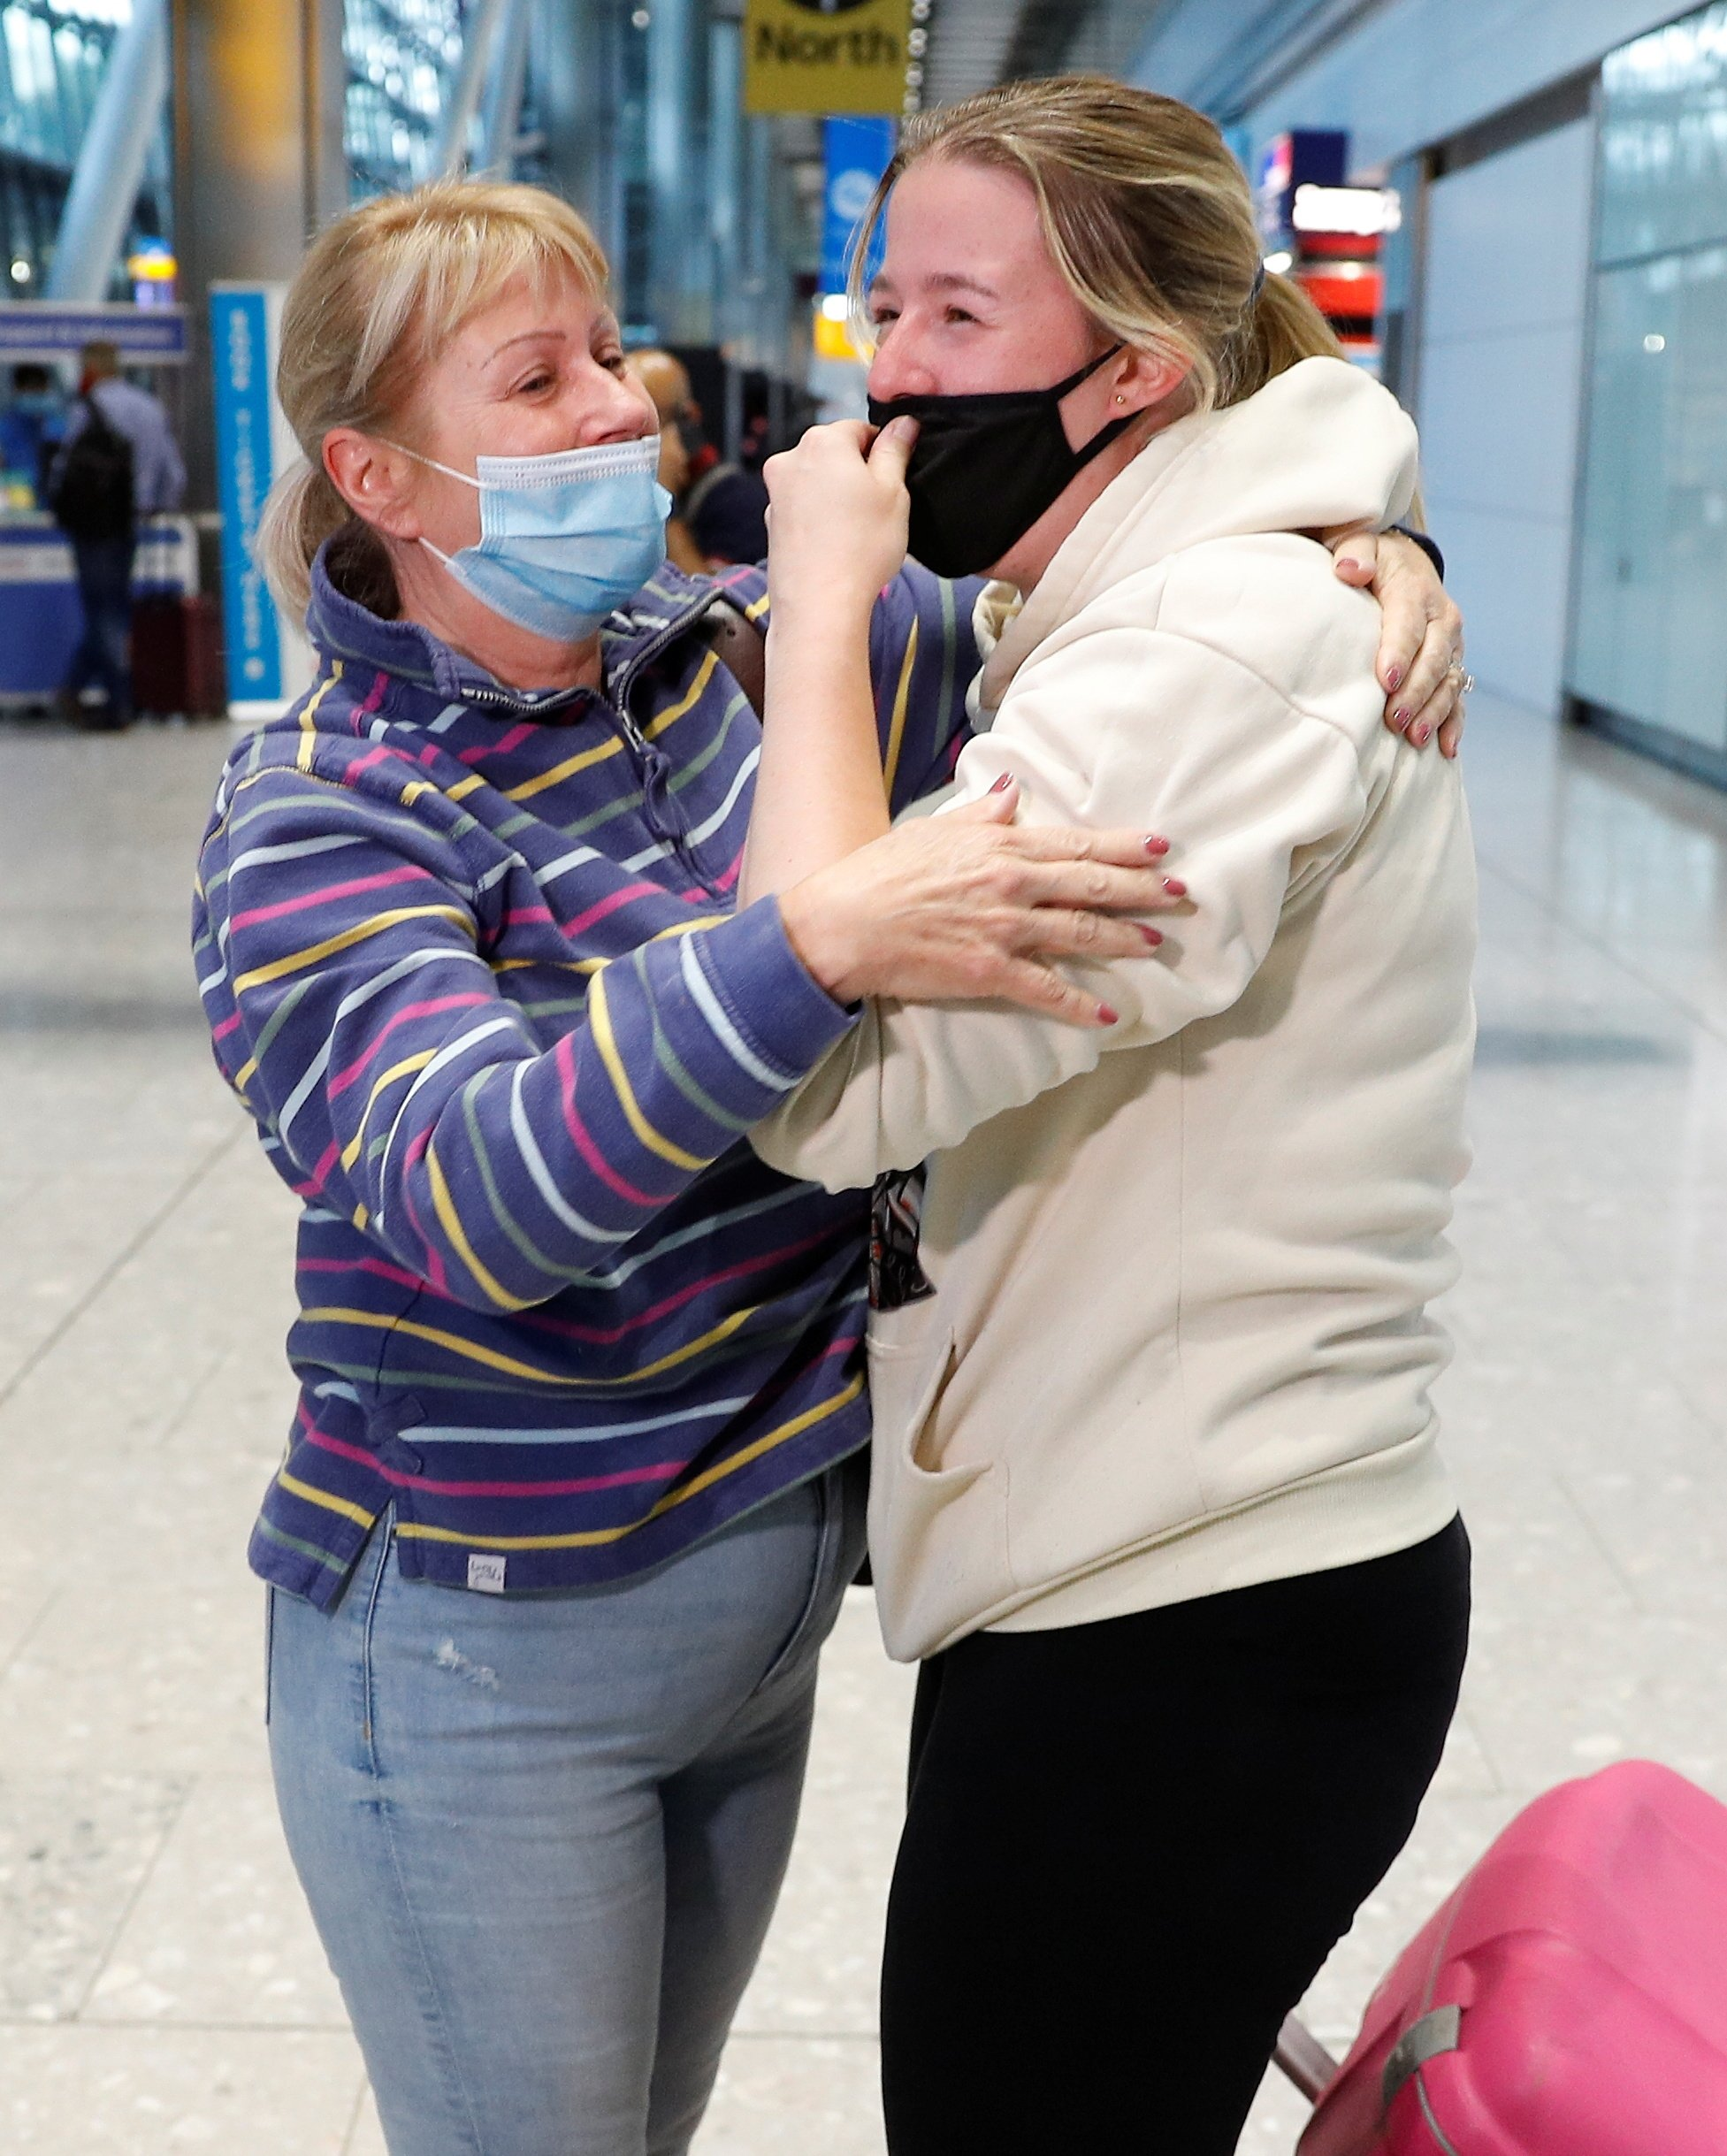 Claire Frohlich embraces her daughter who returned from the U.S., in the international arrivals area of Terminal 5 at London's Heathrow Airport, Britain, Aug. 2, 2021. (Reuters Photo)